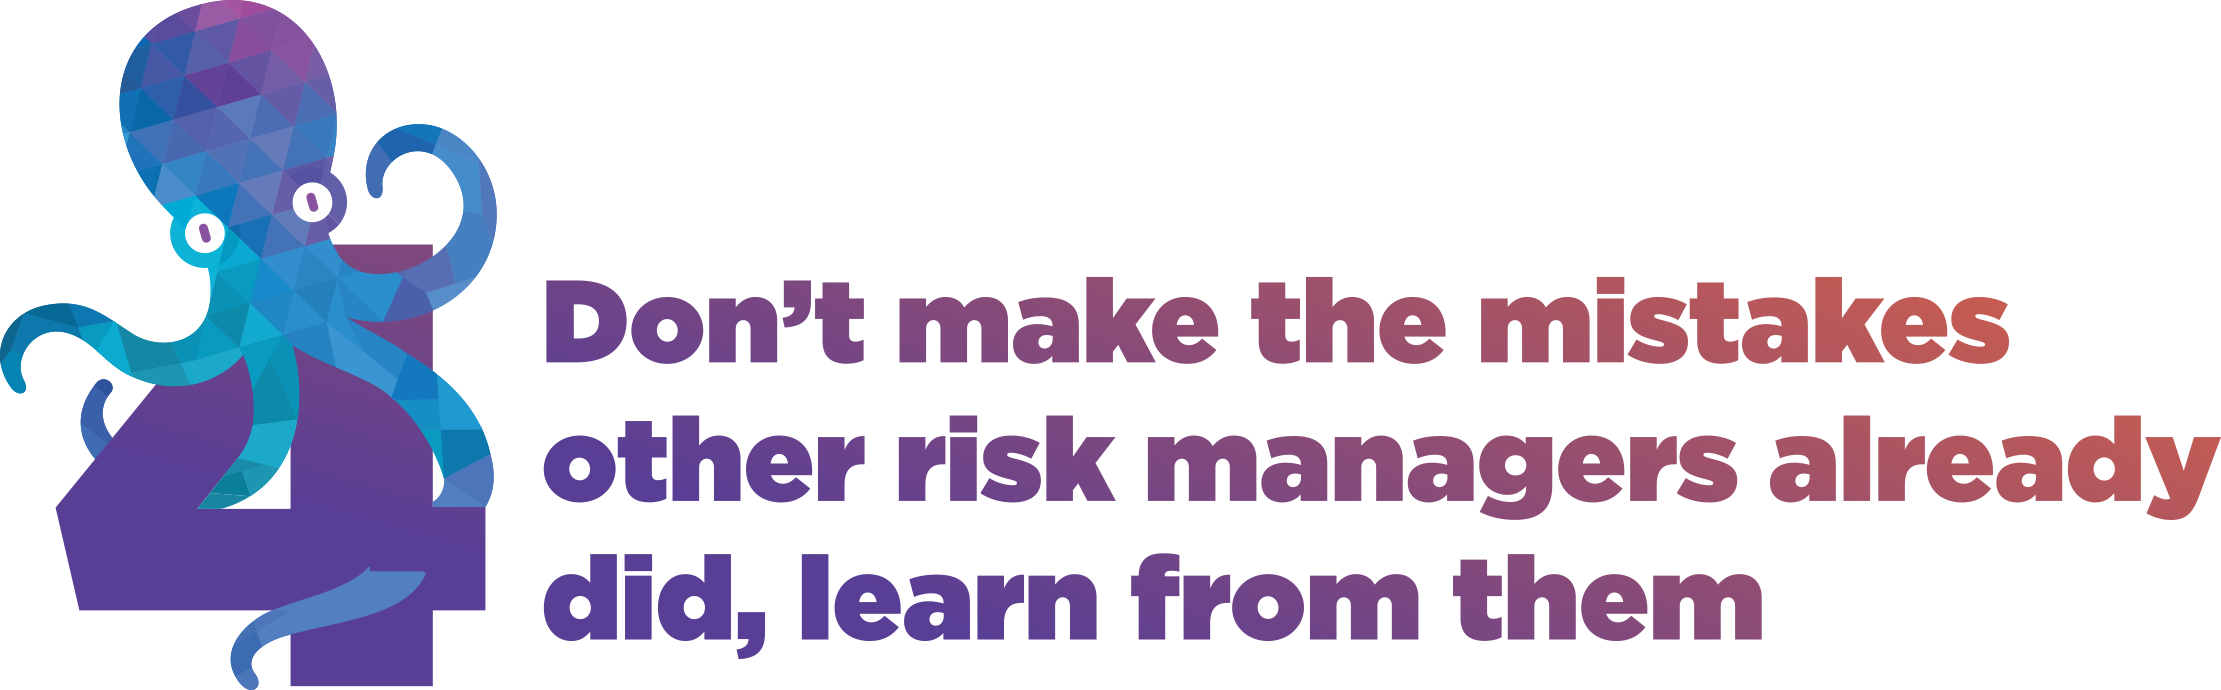 4. Don't make the mistakes other risk managers already did, learn from them